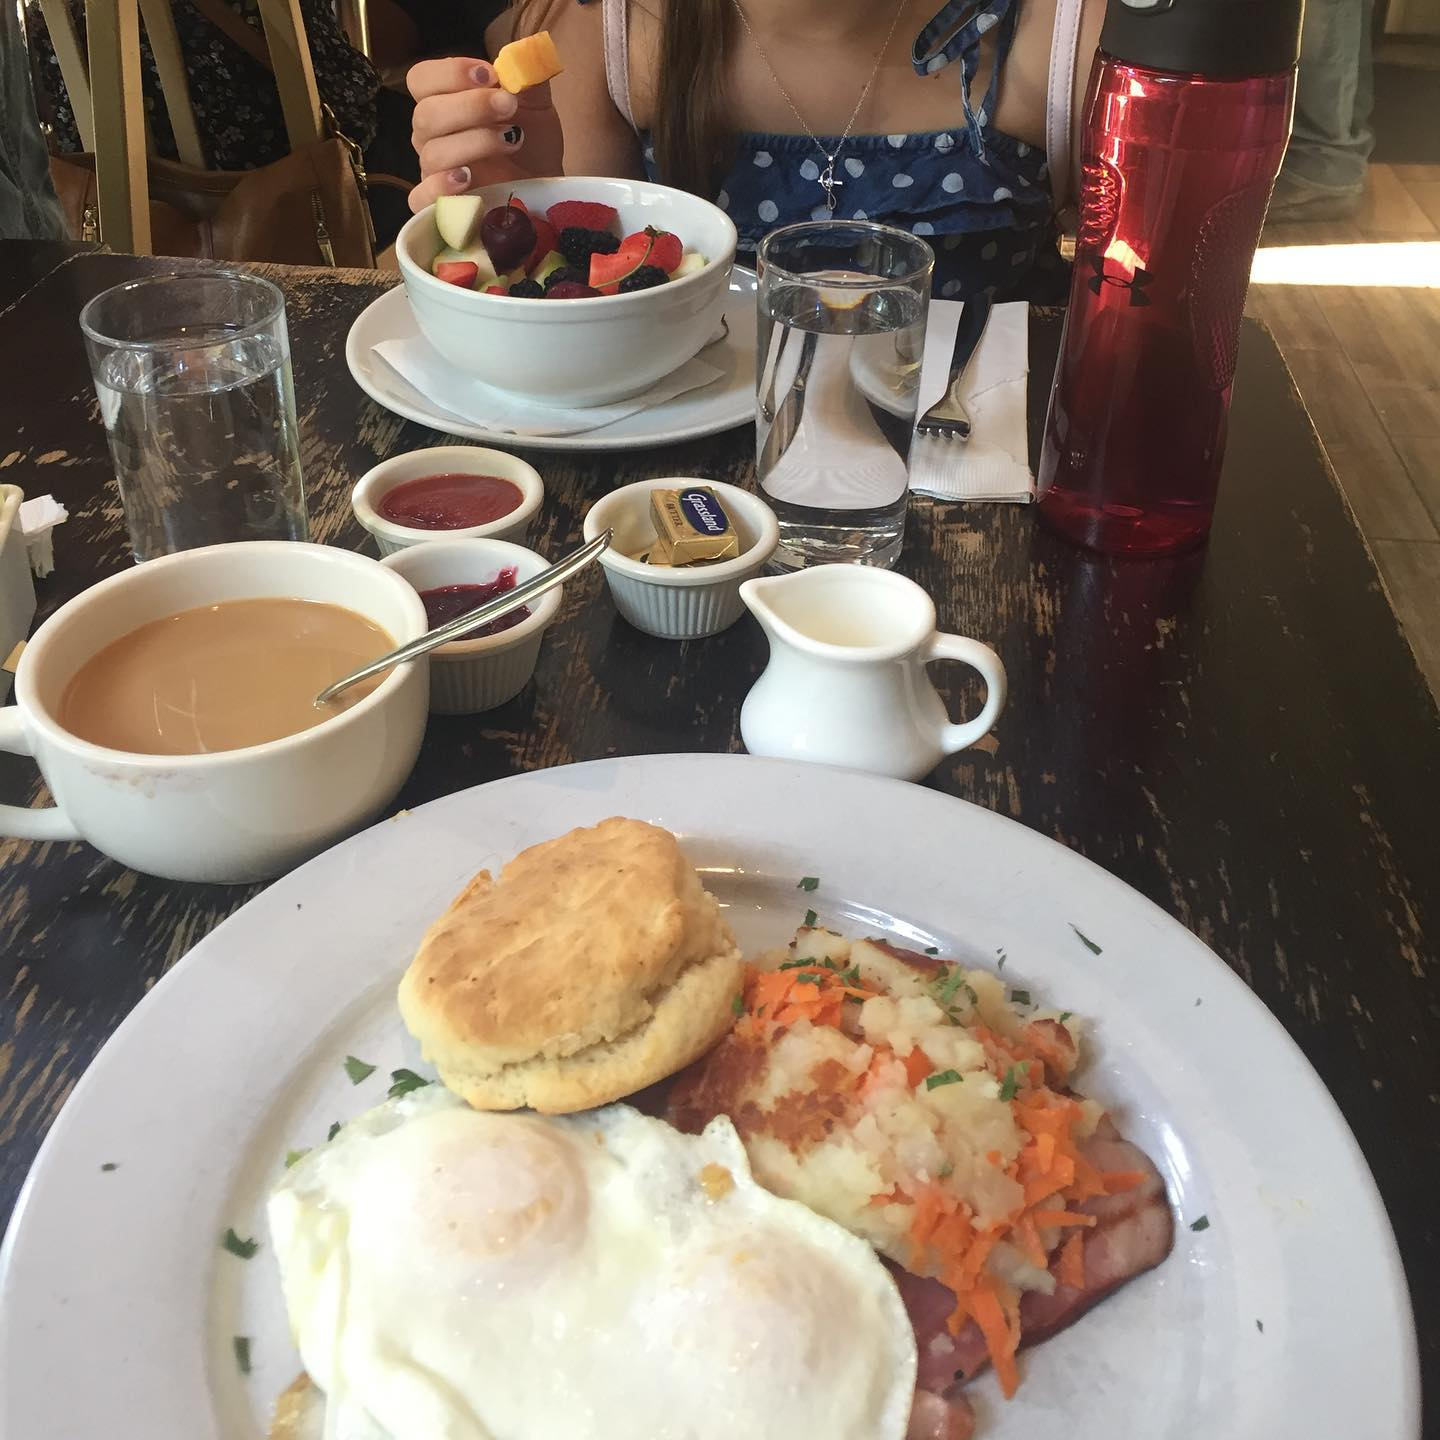 Say good morning with a nice hearty eggs breakfast to start your day off right. #relax #breakfast #eggs #coffee #vacationinstyle